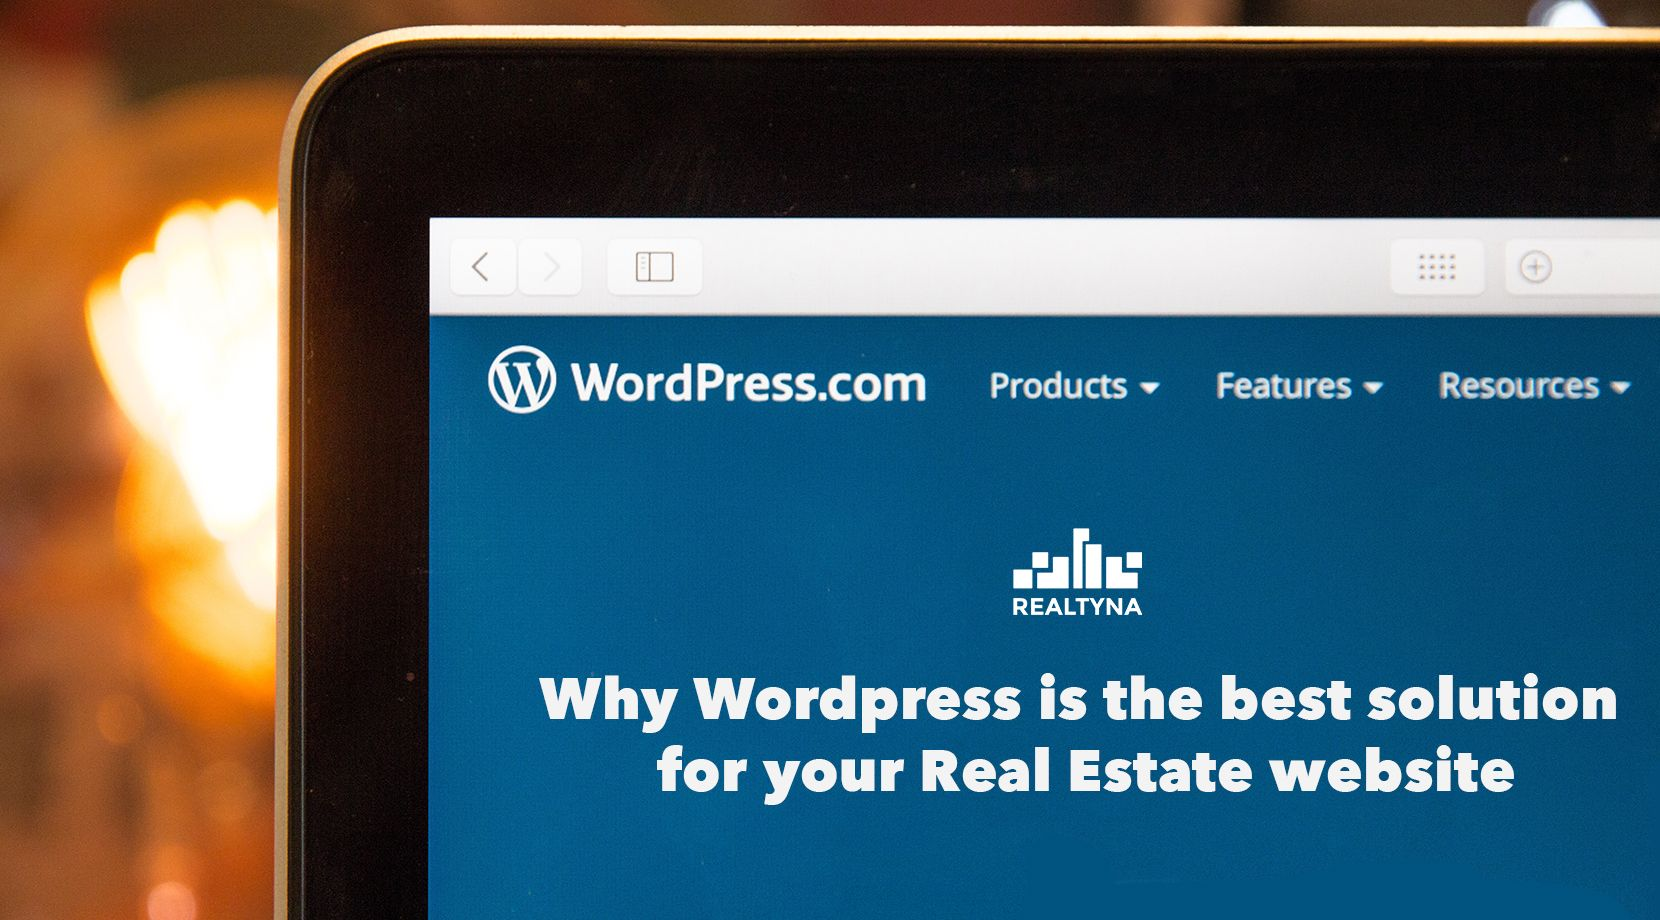 Why WordPress is the Best Solution for Your Real Estate Website